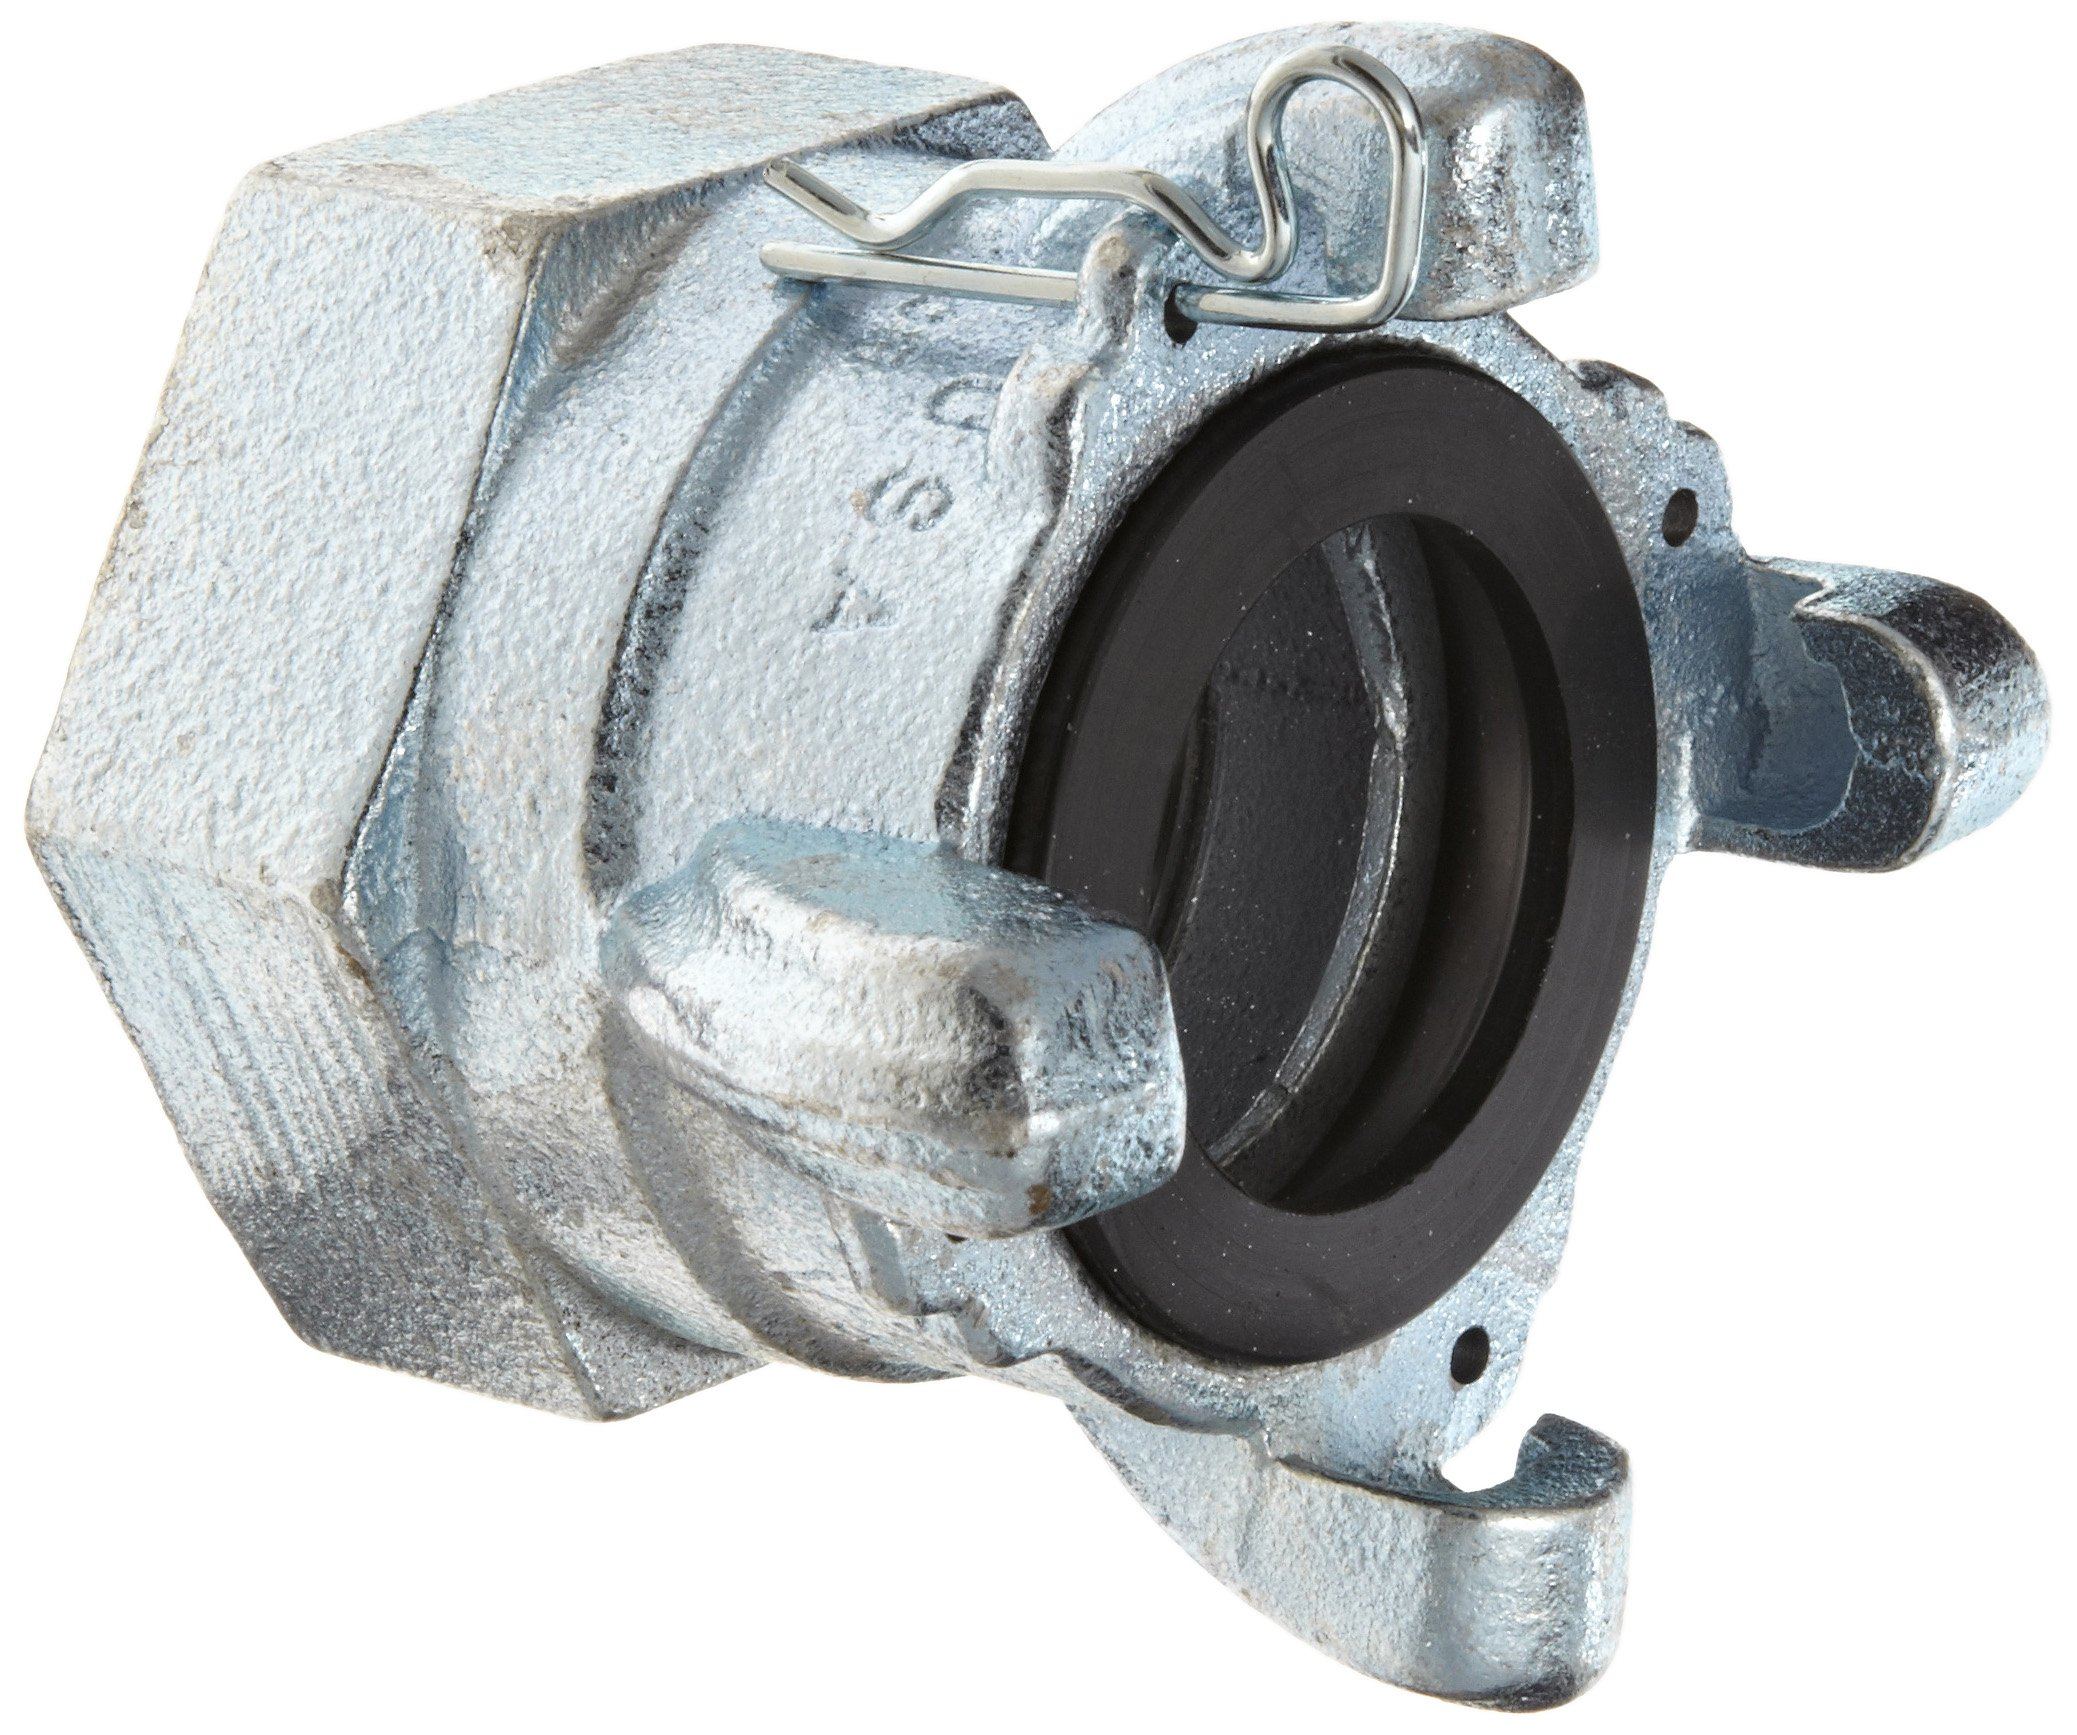 Dixon Air King AM28 Iron Air Hose Fitting, 4 Lug Quick Acting Coupling, 2'' NPT Female End by Dixon